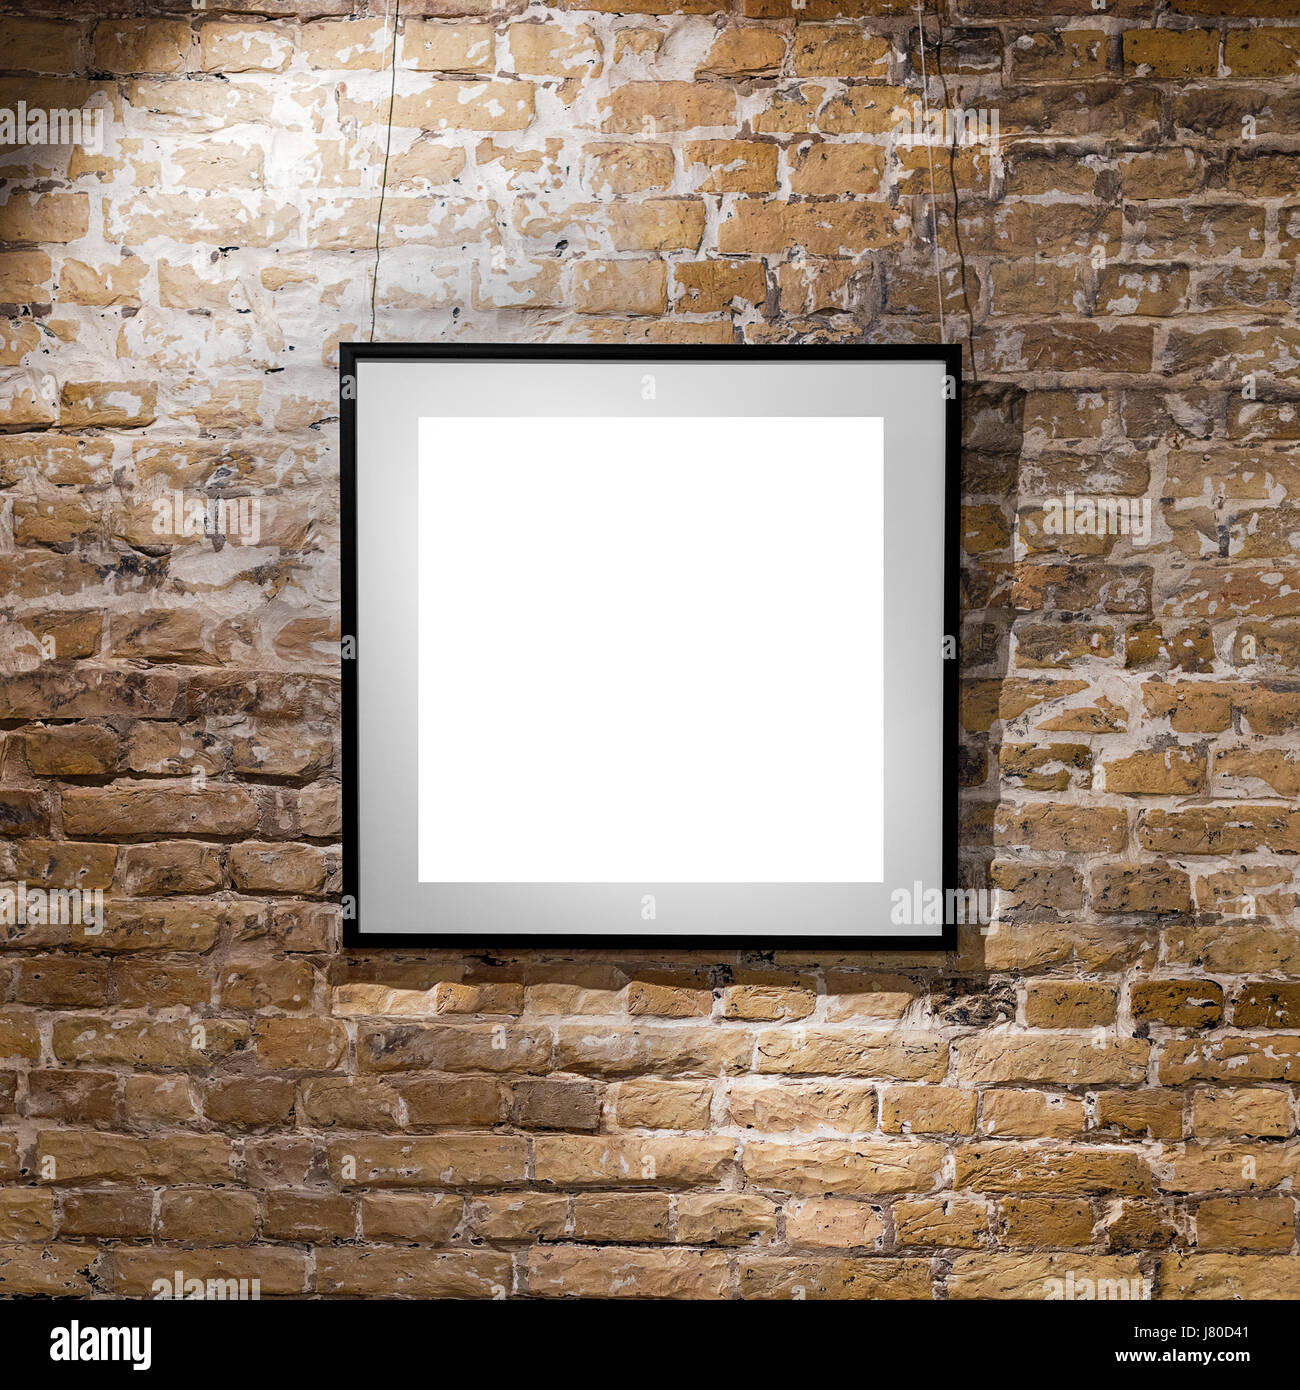 empty frame on light brick wall blank space poster or art frame waiting to be filled square black frame mock up - Empty Picture Frame